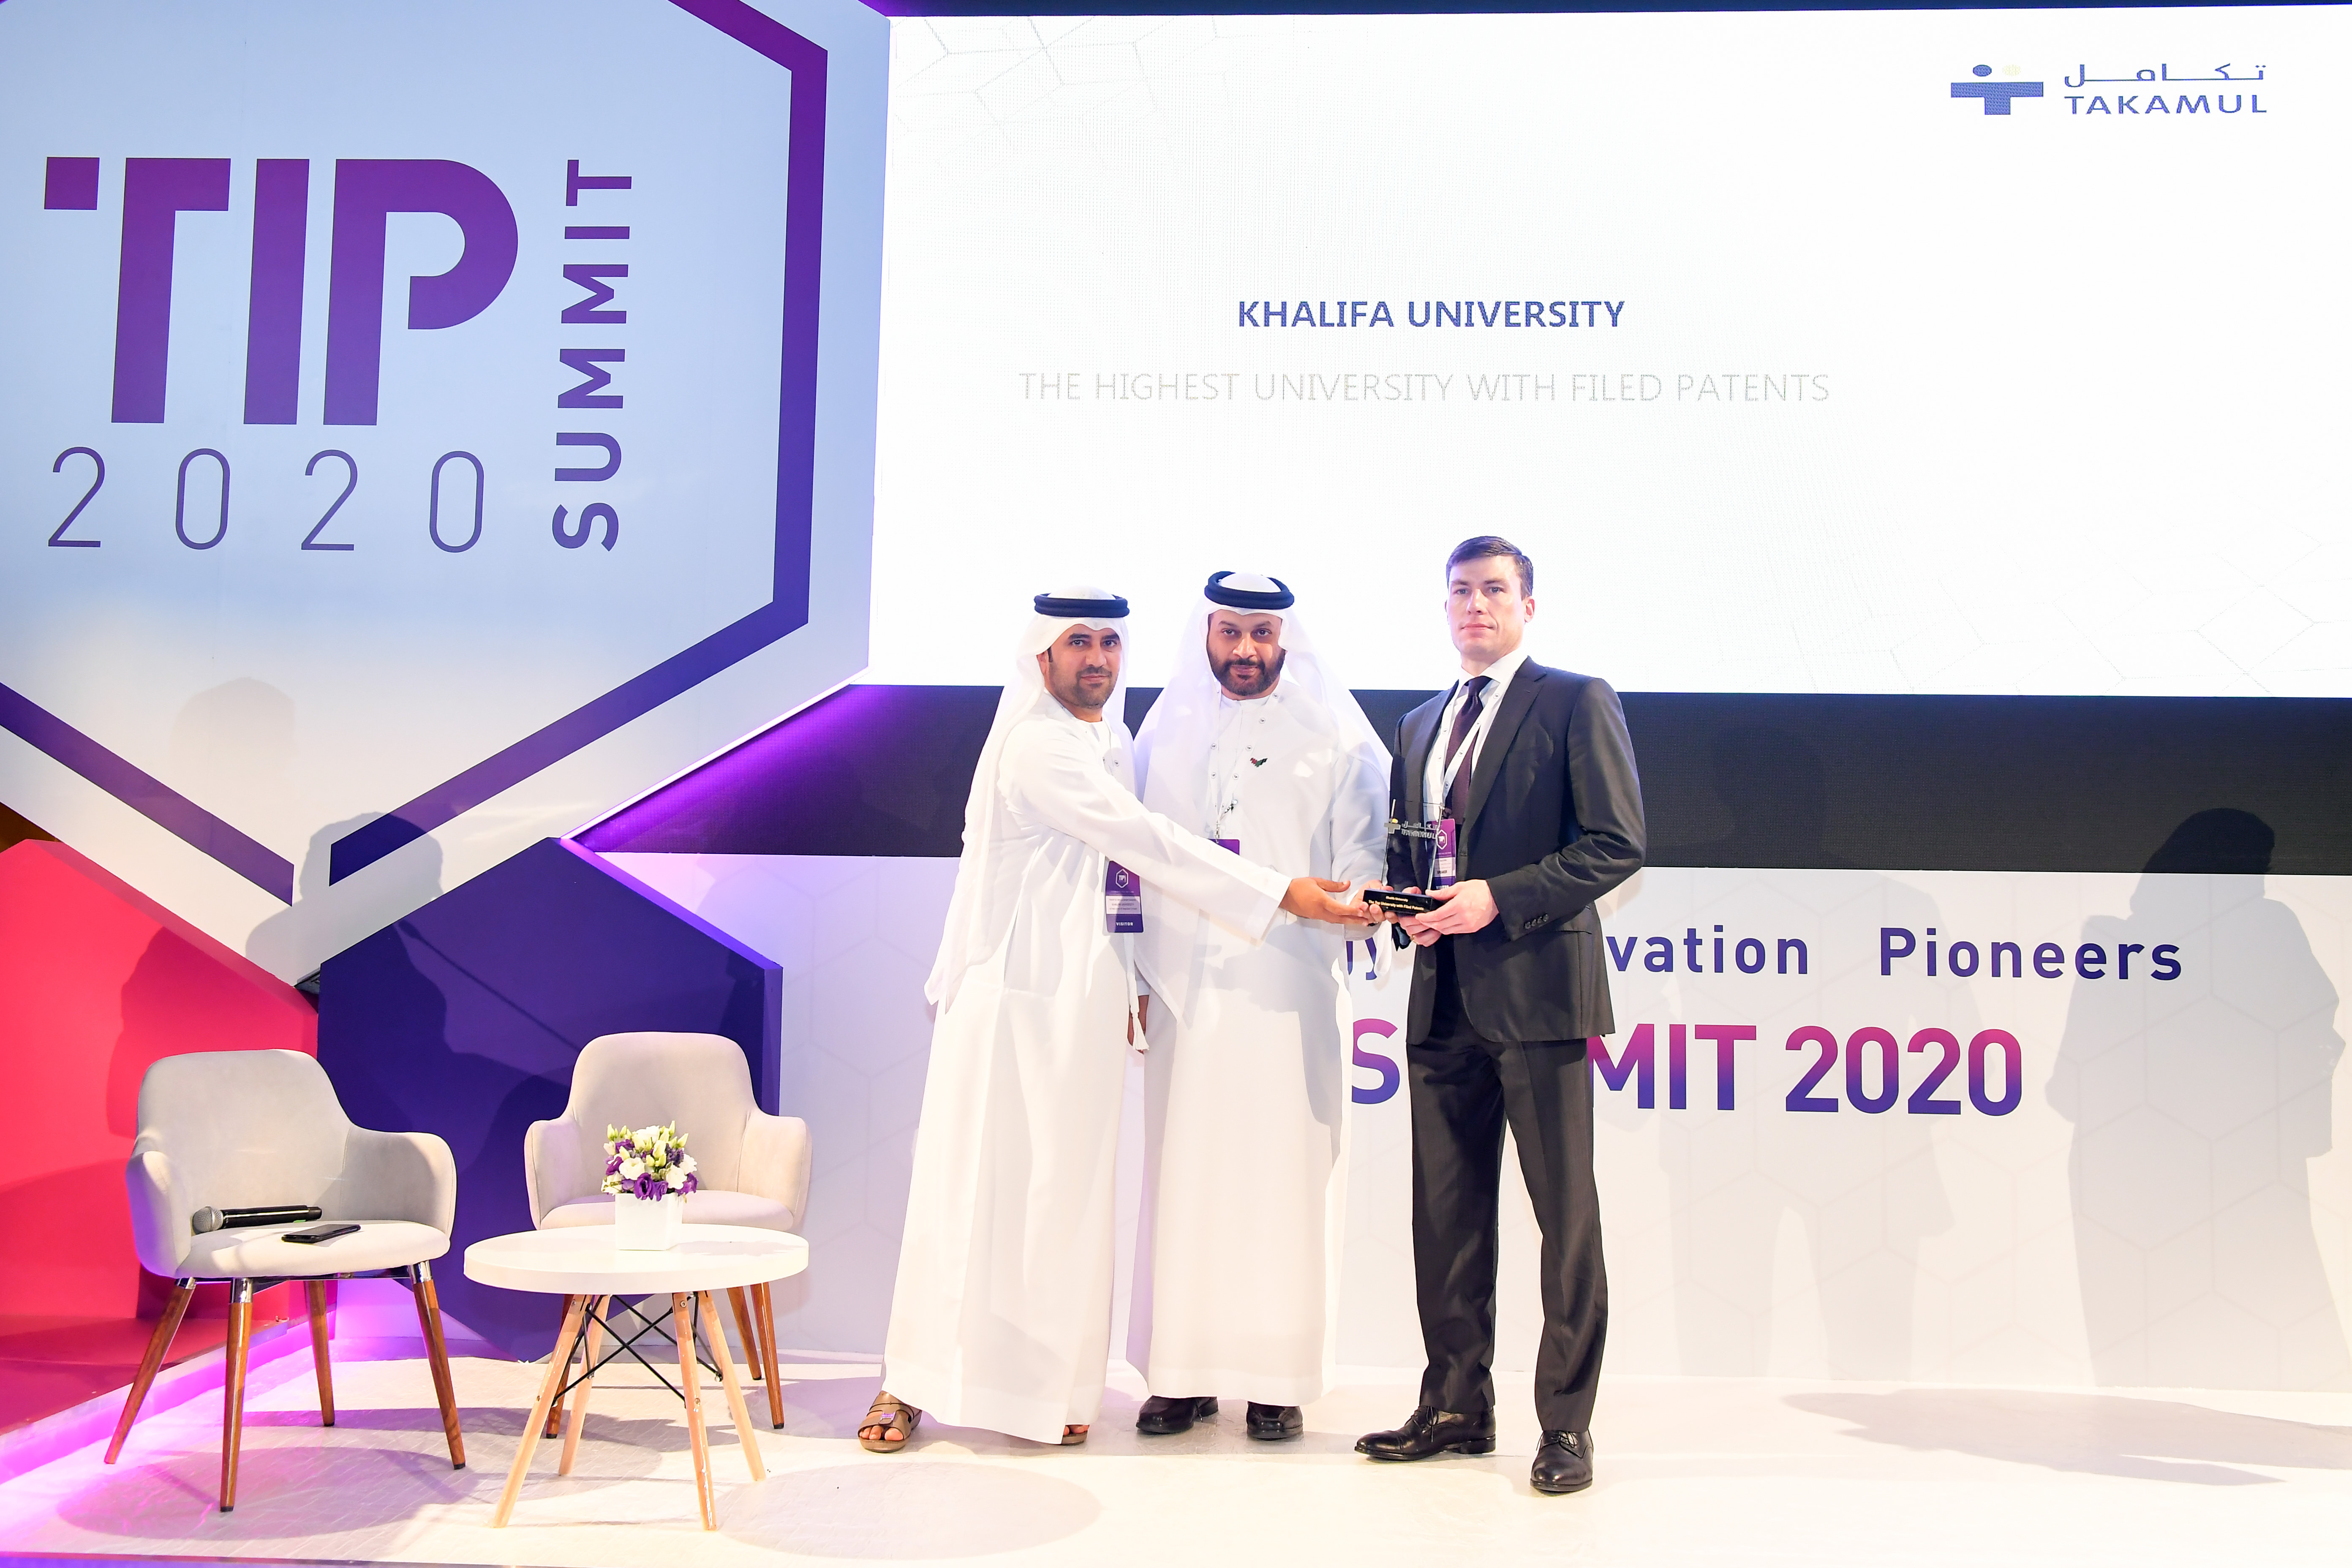 Khalifa University Wins Award for Highest Number of Filed Patents in UAE, as EBTIC Wins 'Most Inventive Innovation Center' Award